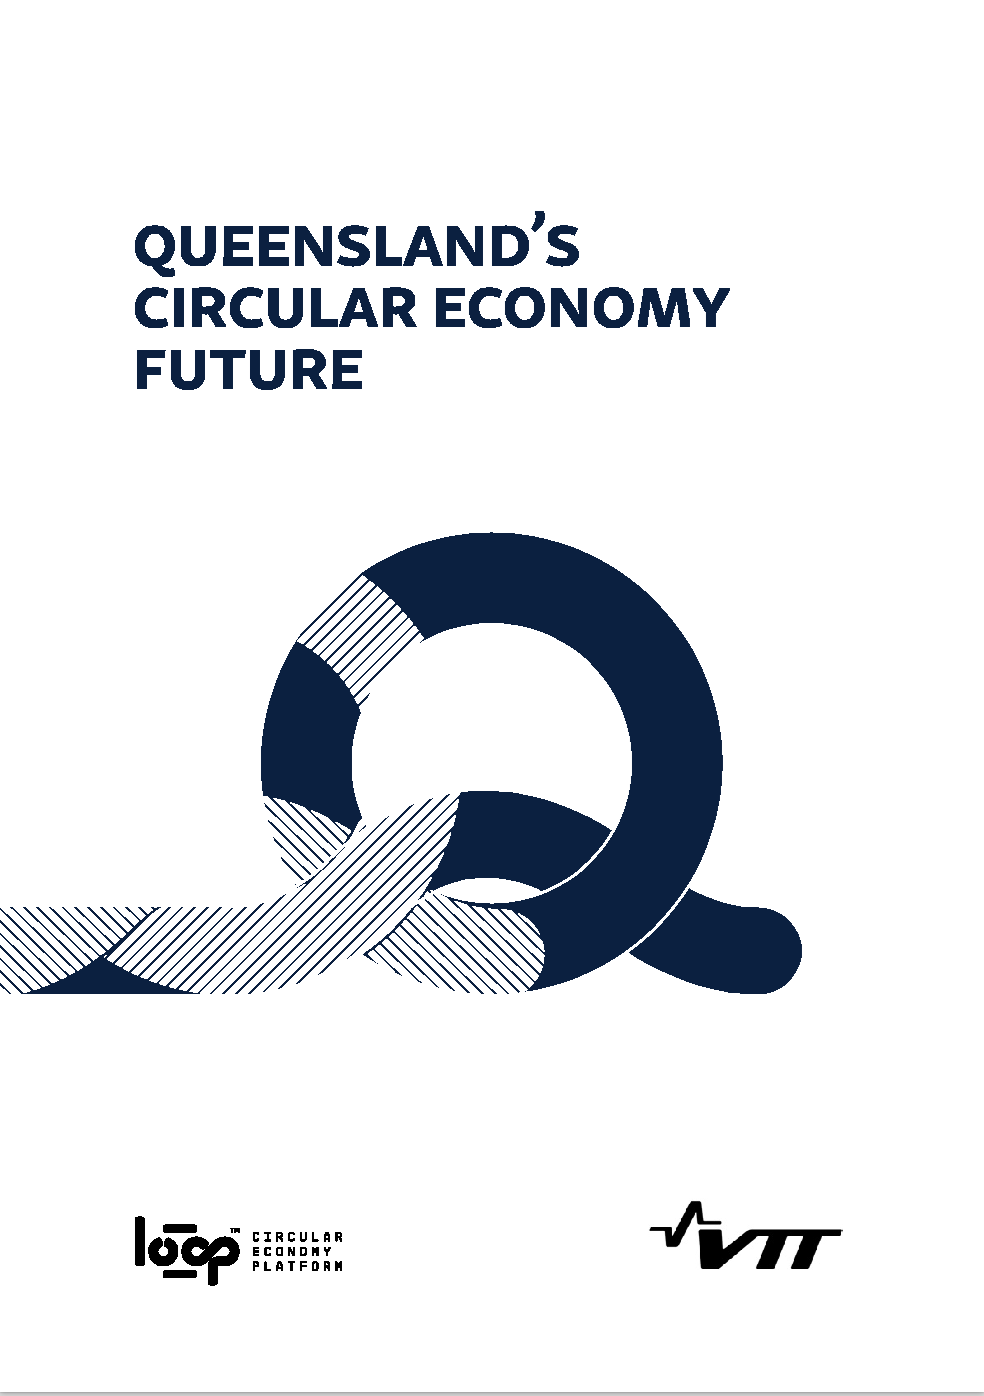 QueenslandsCircularEconomyFuture2.png